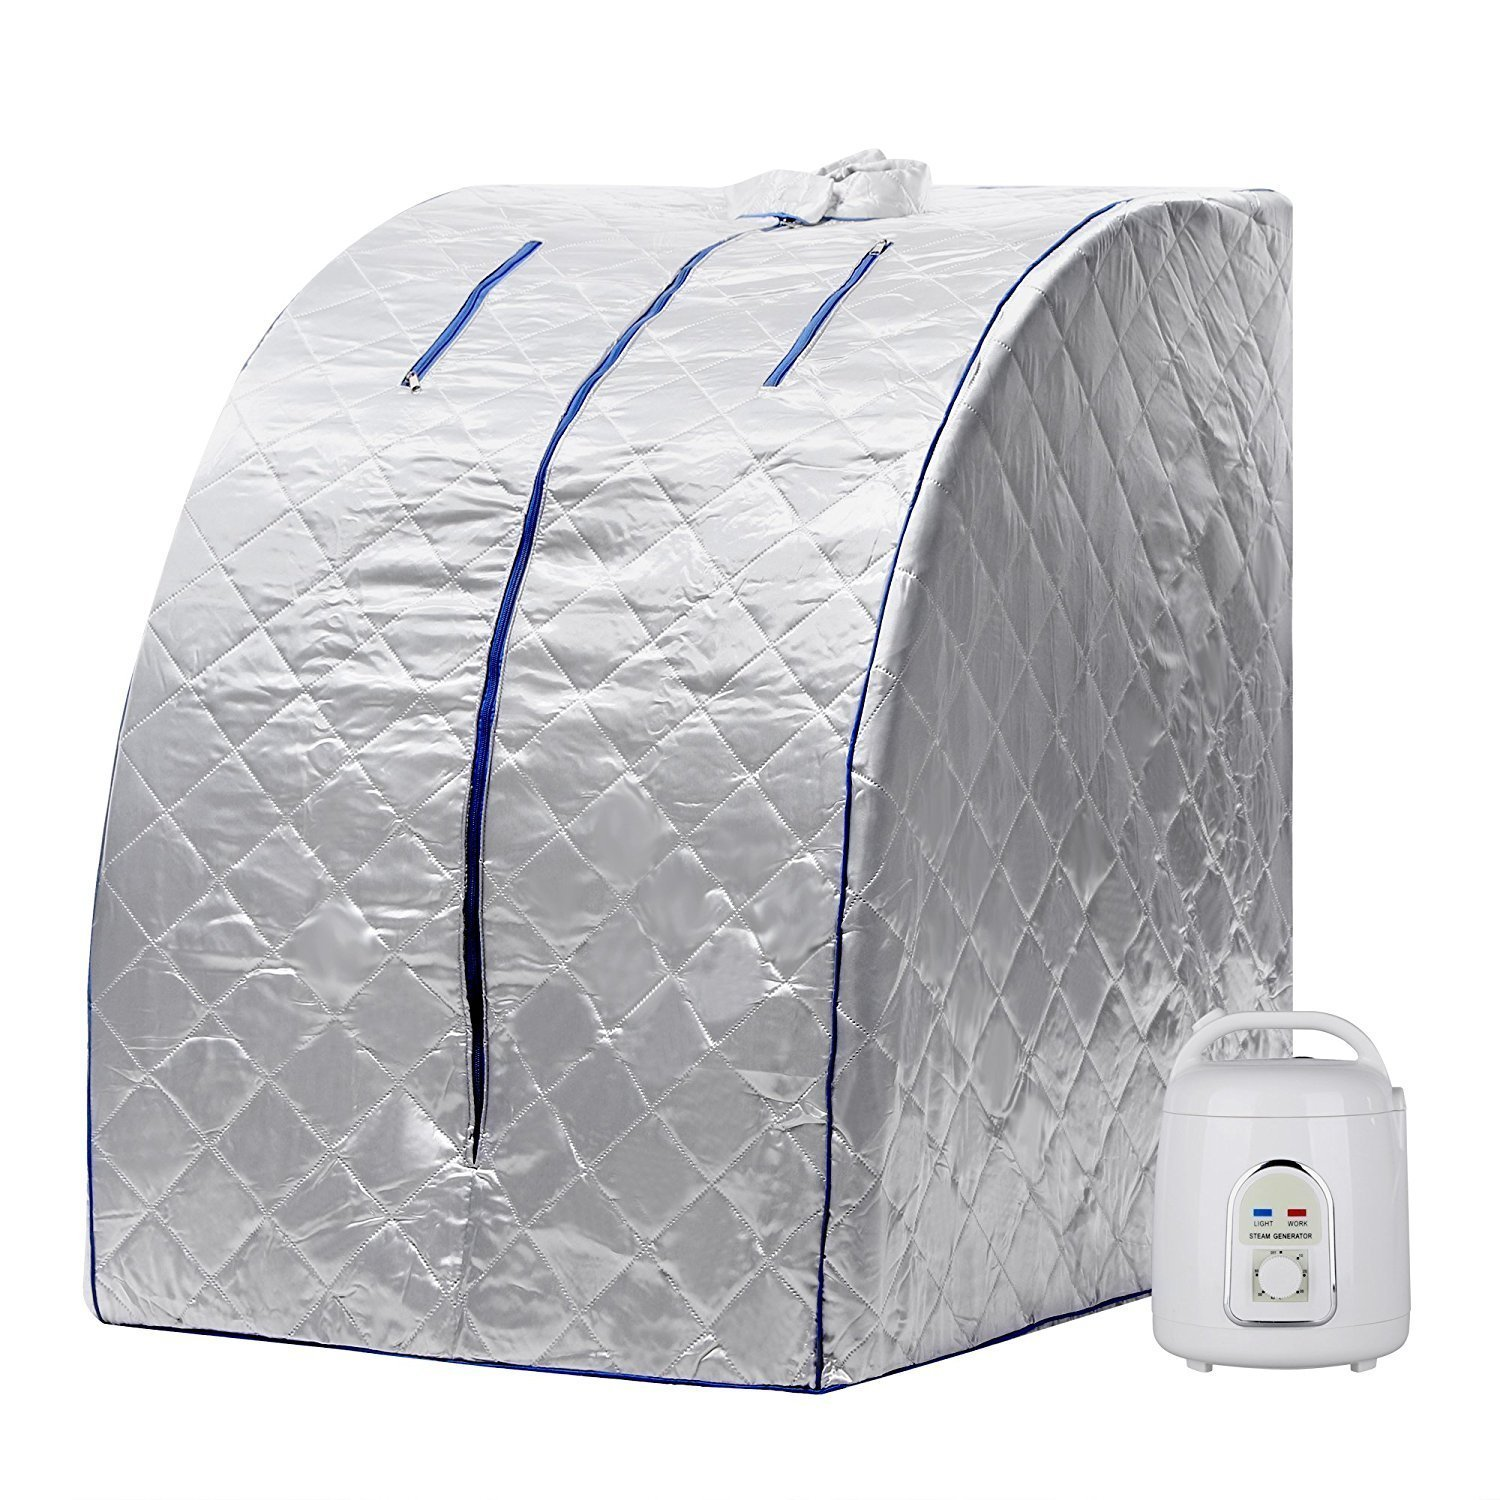 Garain Supply Xlarge Portable Indoor Personal Therapeutic Steam Sauna Spa Slim Detox Weight Loss Home, 850W (US Stock)